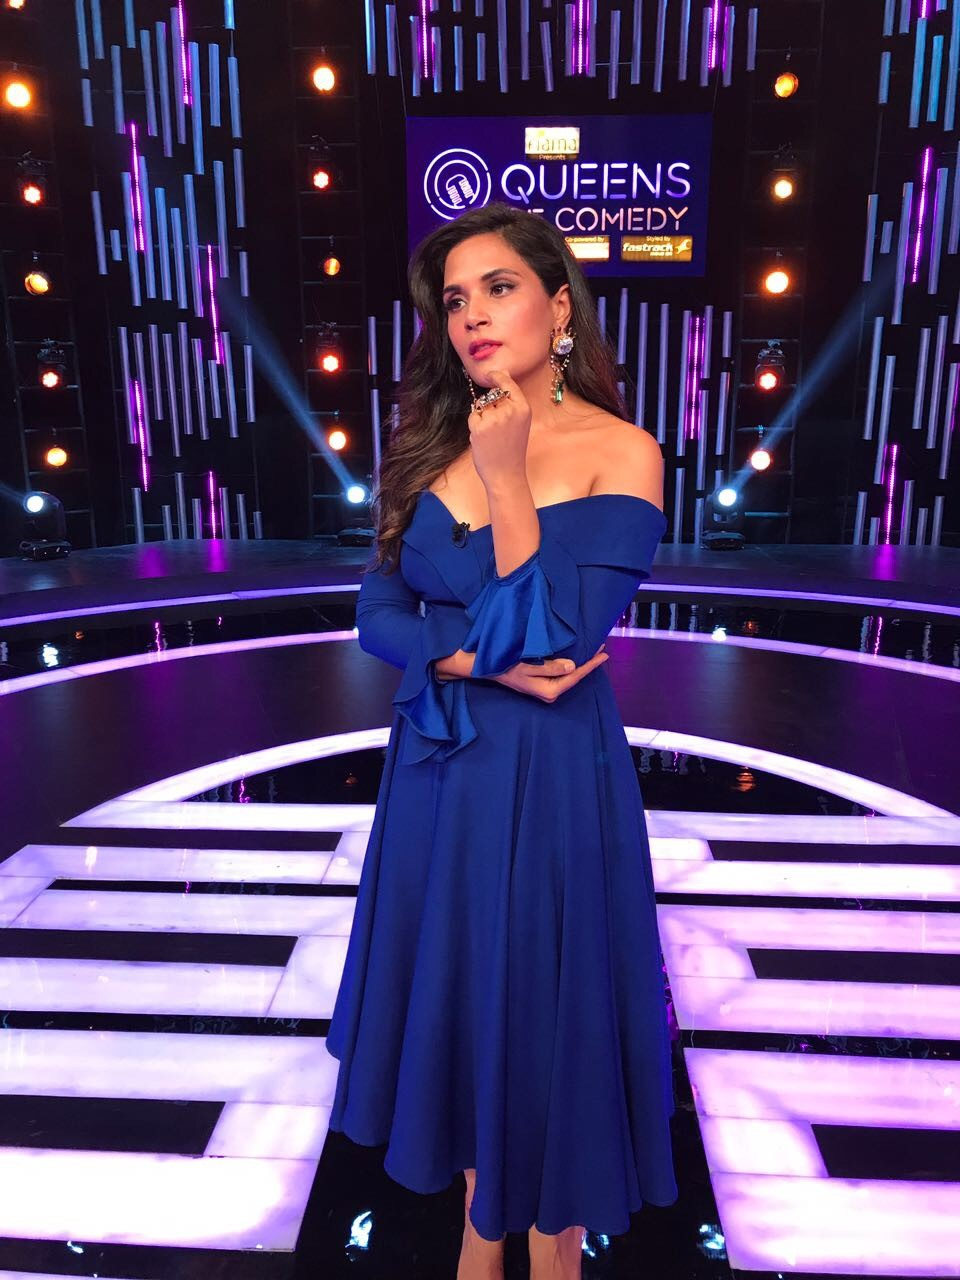 Richa Chadha,actress Richa Chadha,Richa Chadha at Queens of Comedy,Queens of Comedy,Richa Chadha dazzles in blue dress